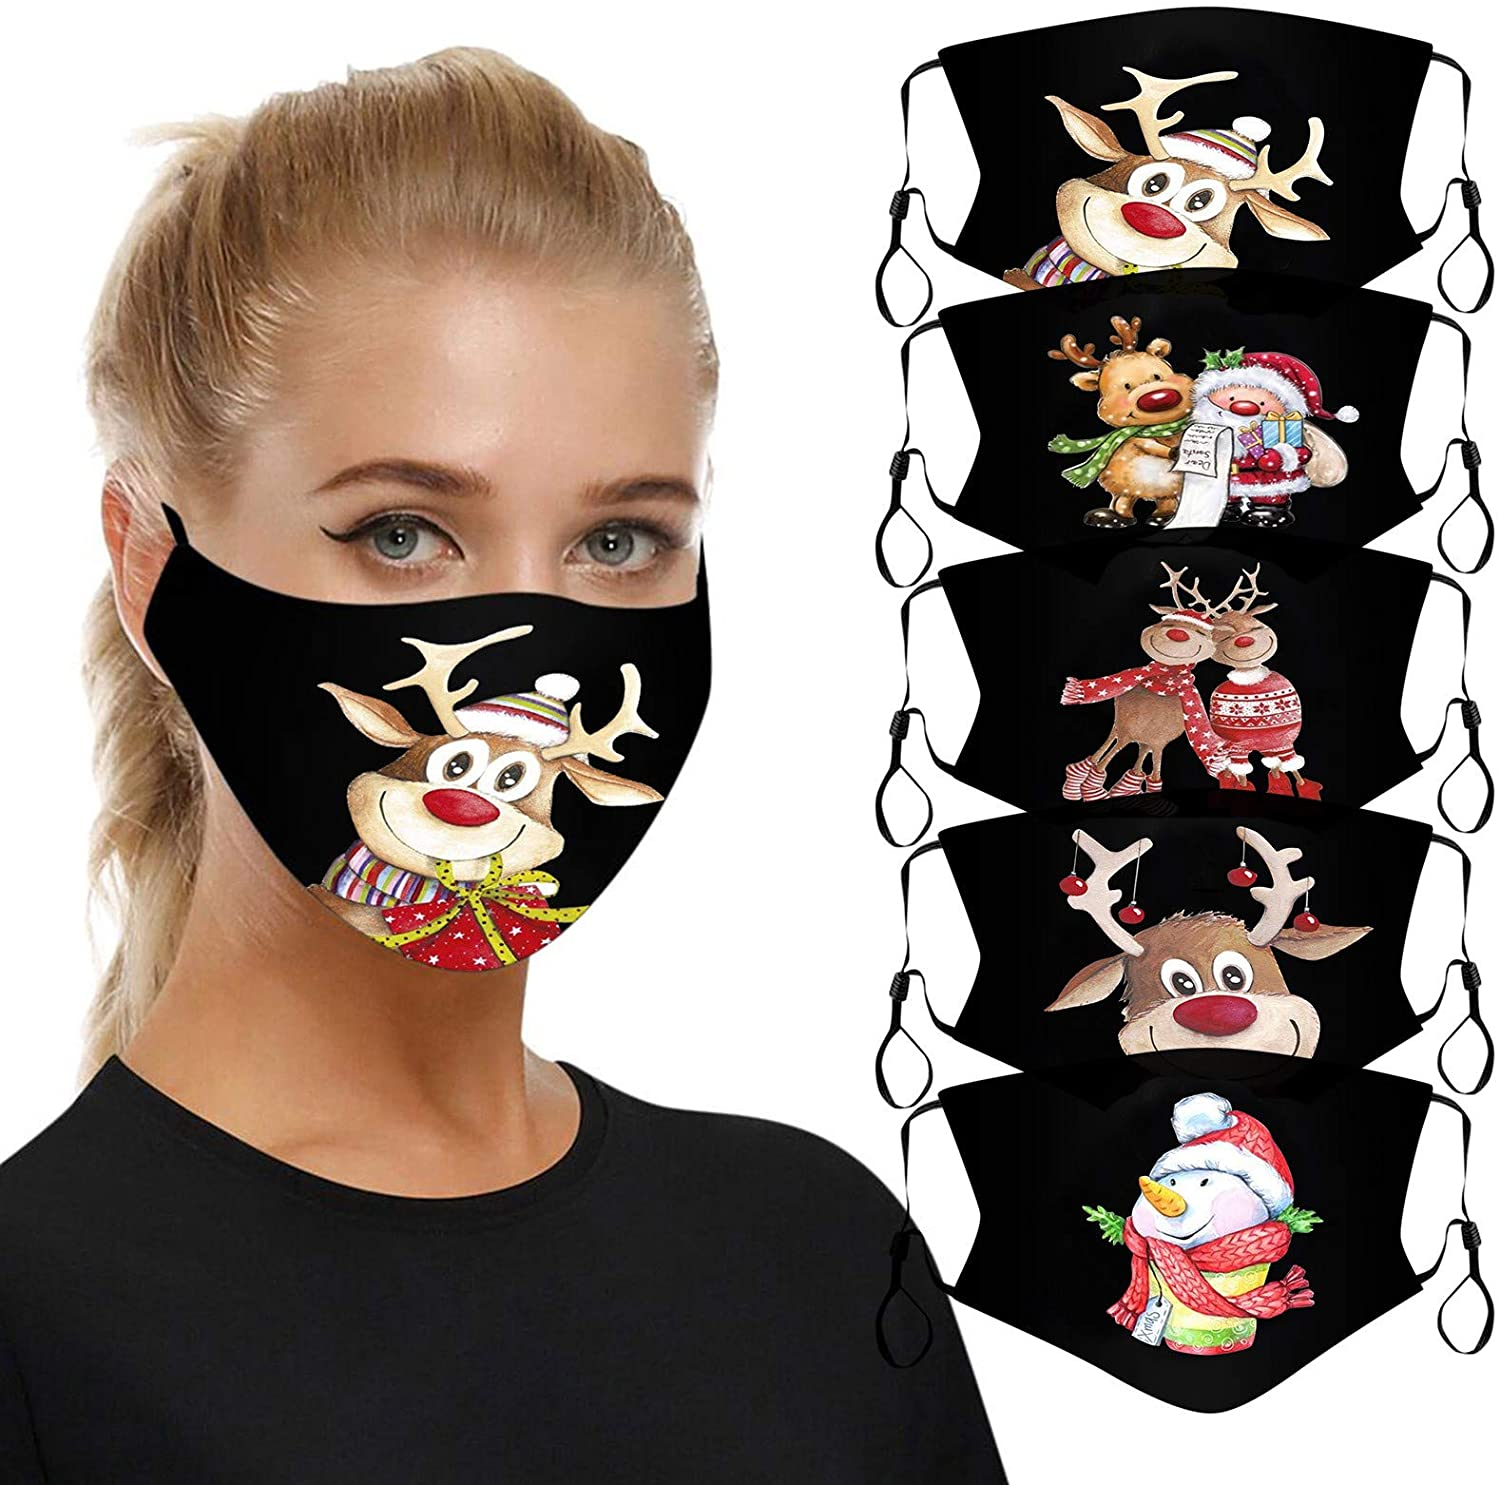 Unisex Christmas mask Face Mask Reusable Printing Mask Funny mask 1pc for Glowing Nightclub Party 5pc